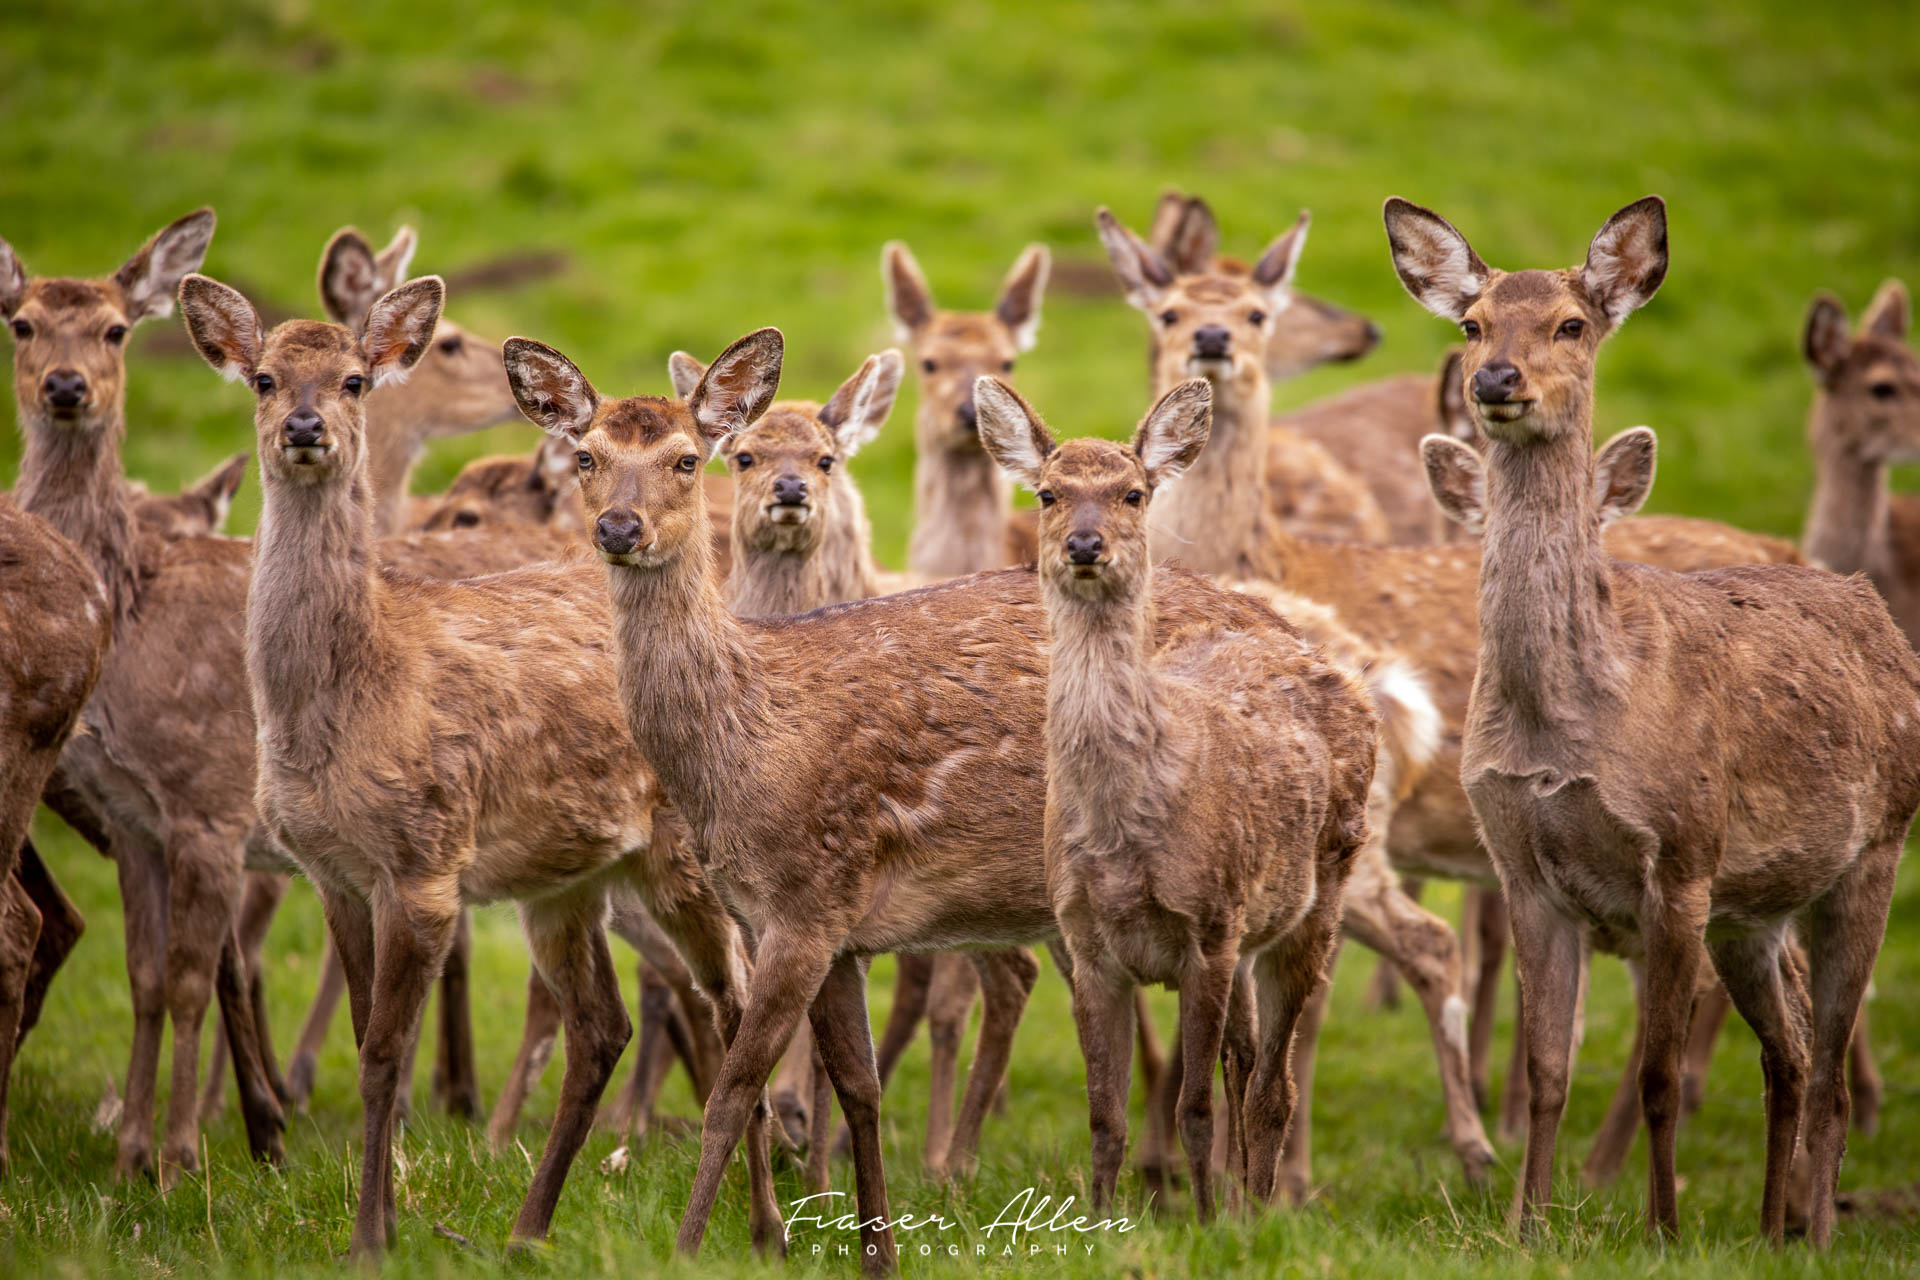 Deer at Fountain's Abbey in the Yorkshire Dales